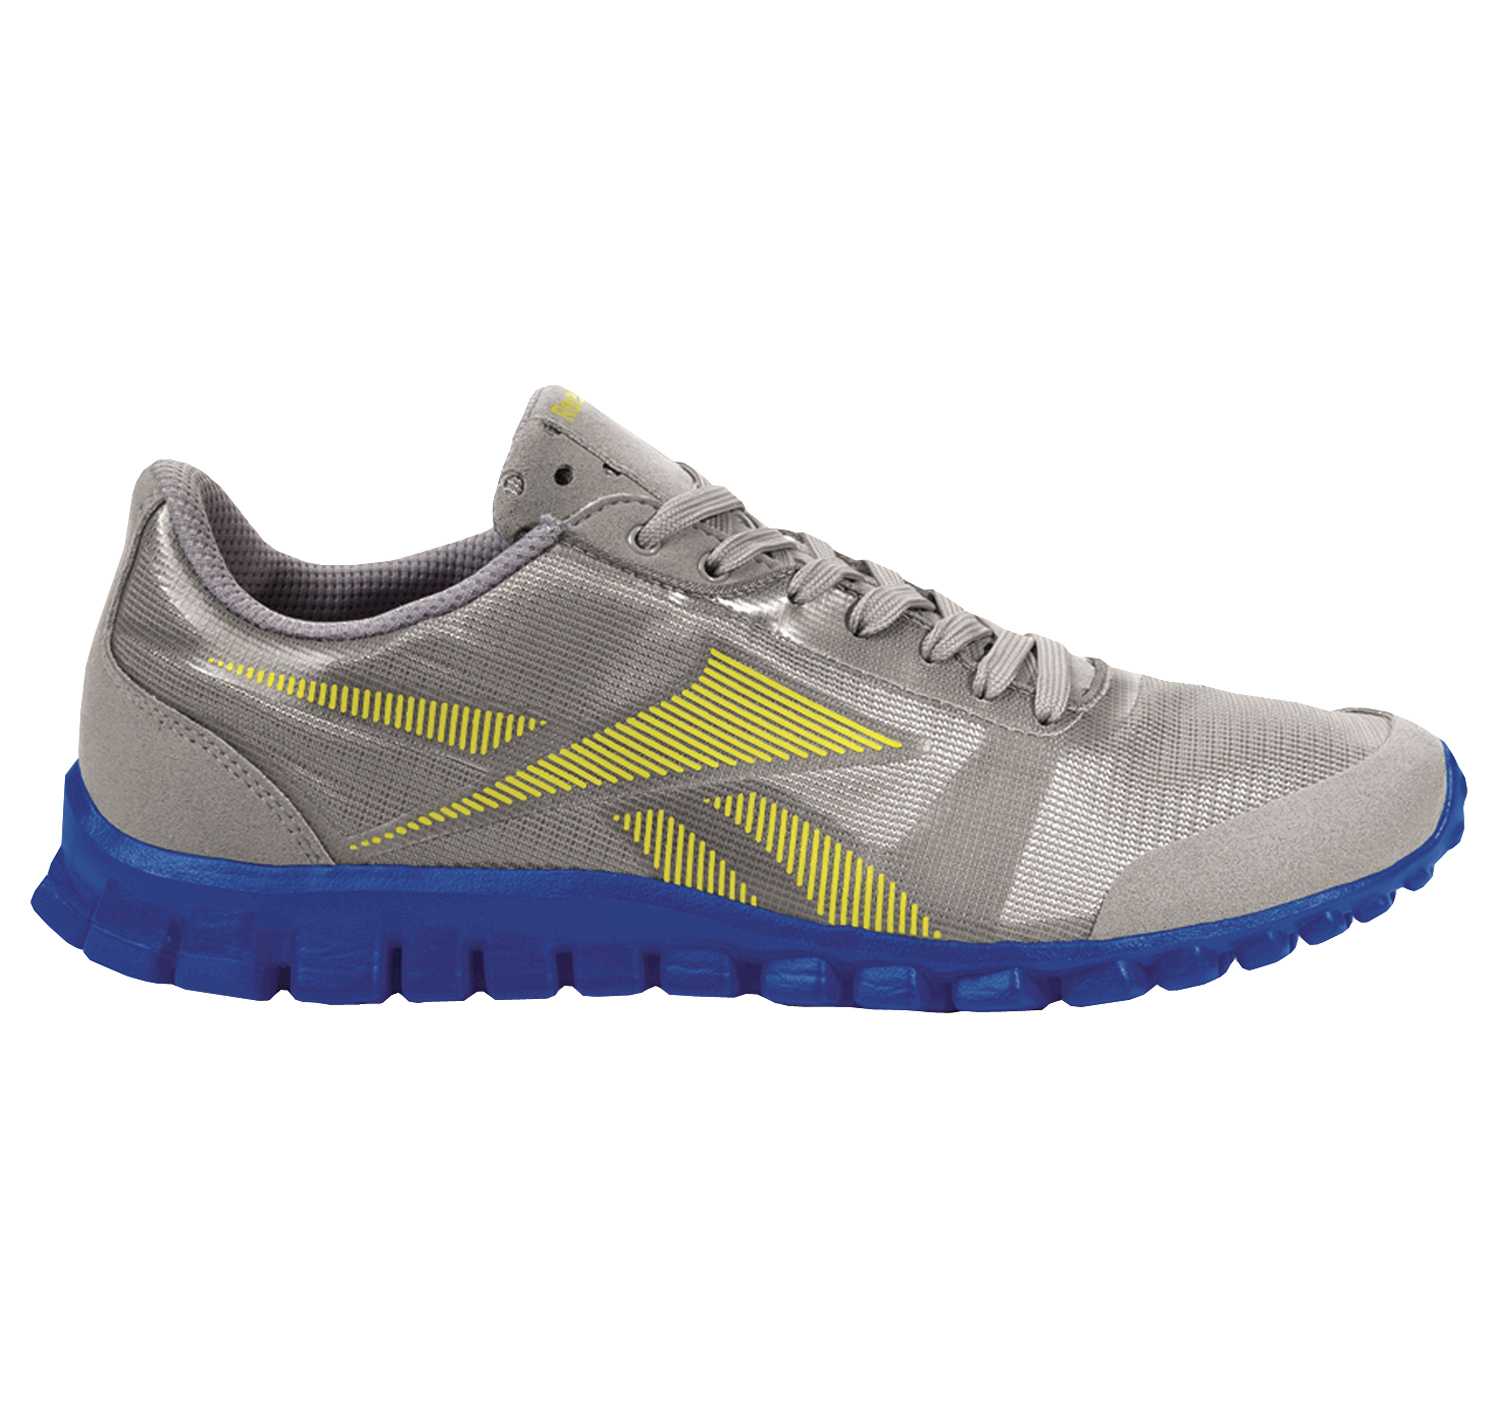 Buy Barefoot Running Shoes India